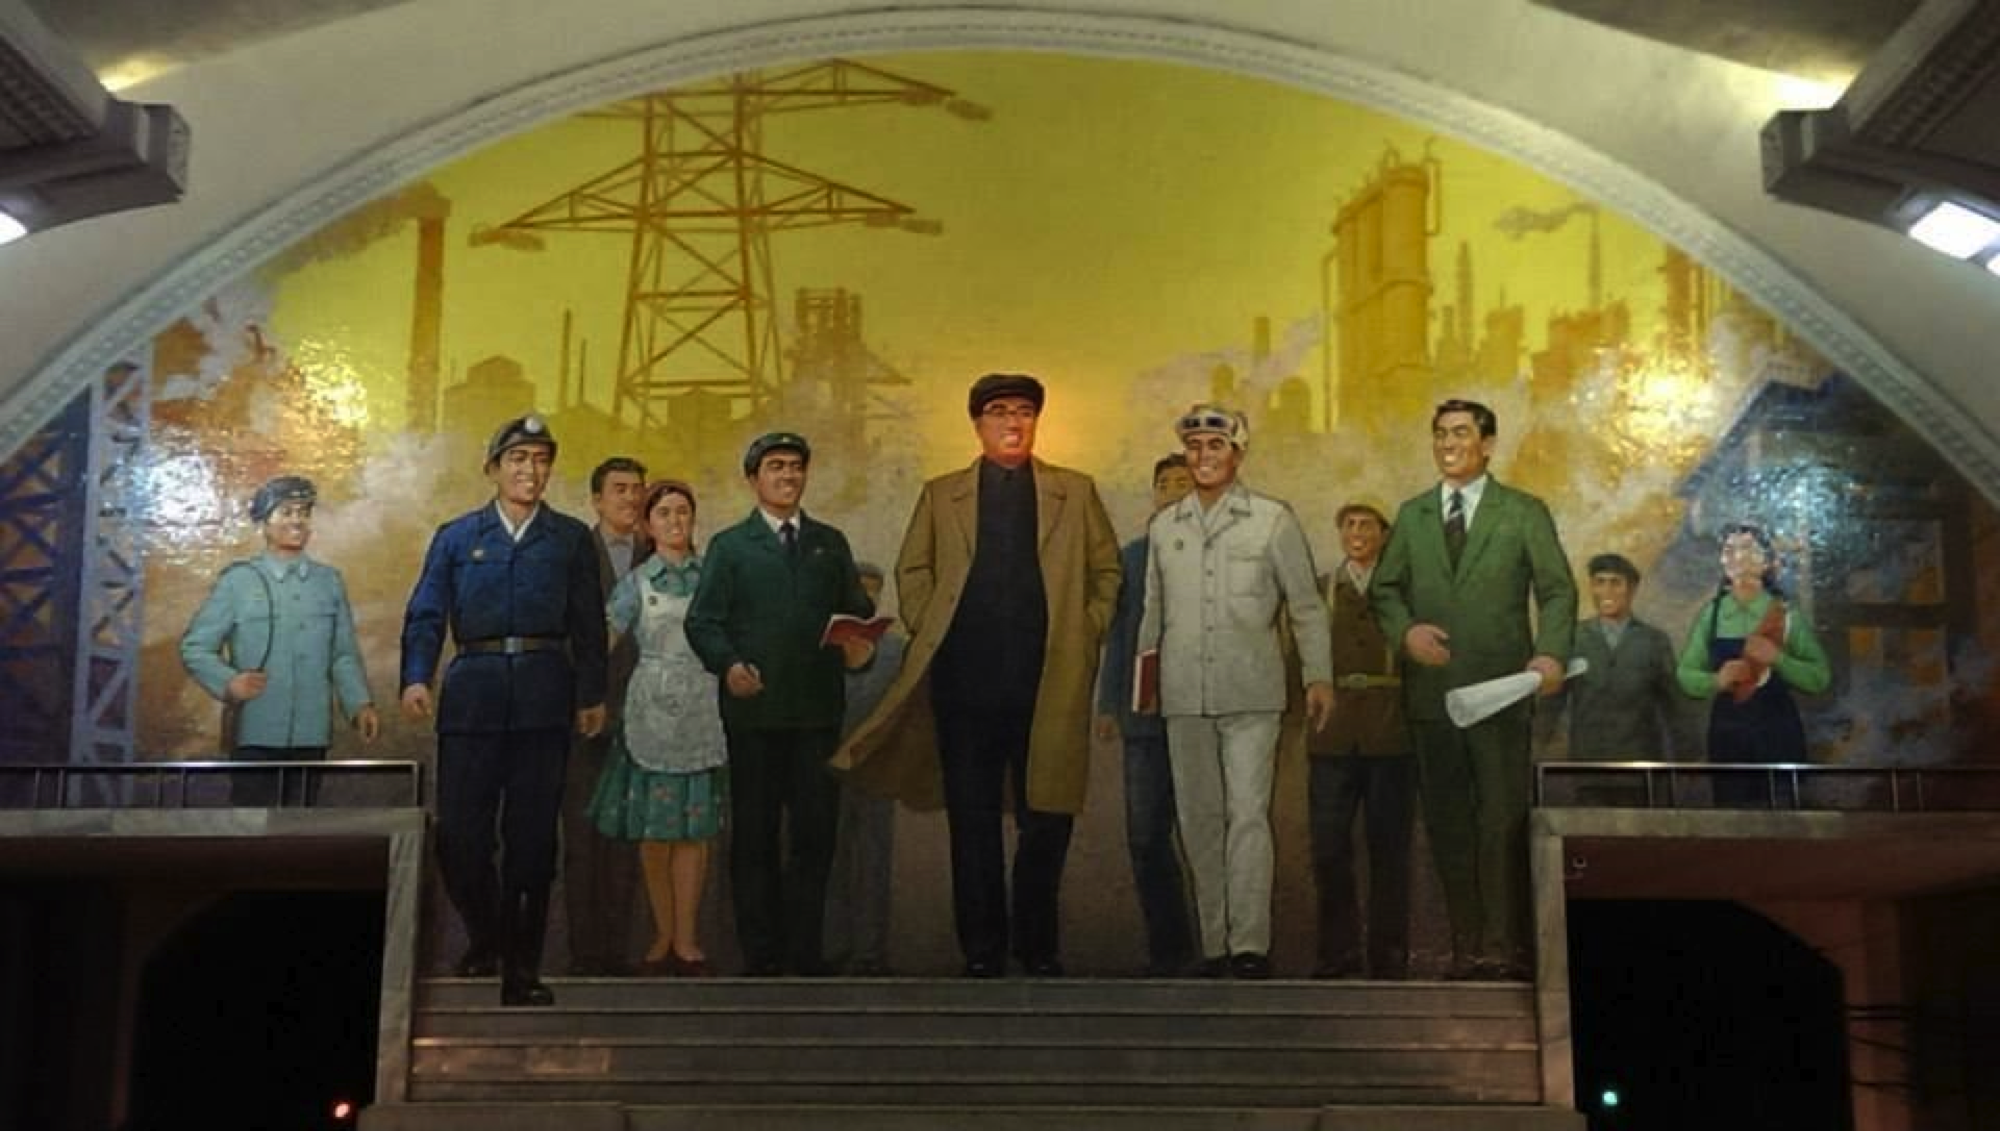 (Mural Inside an Underground Station, Pyongyang)